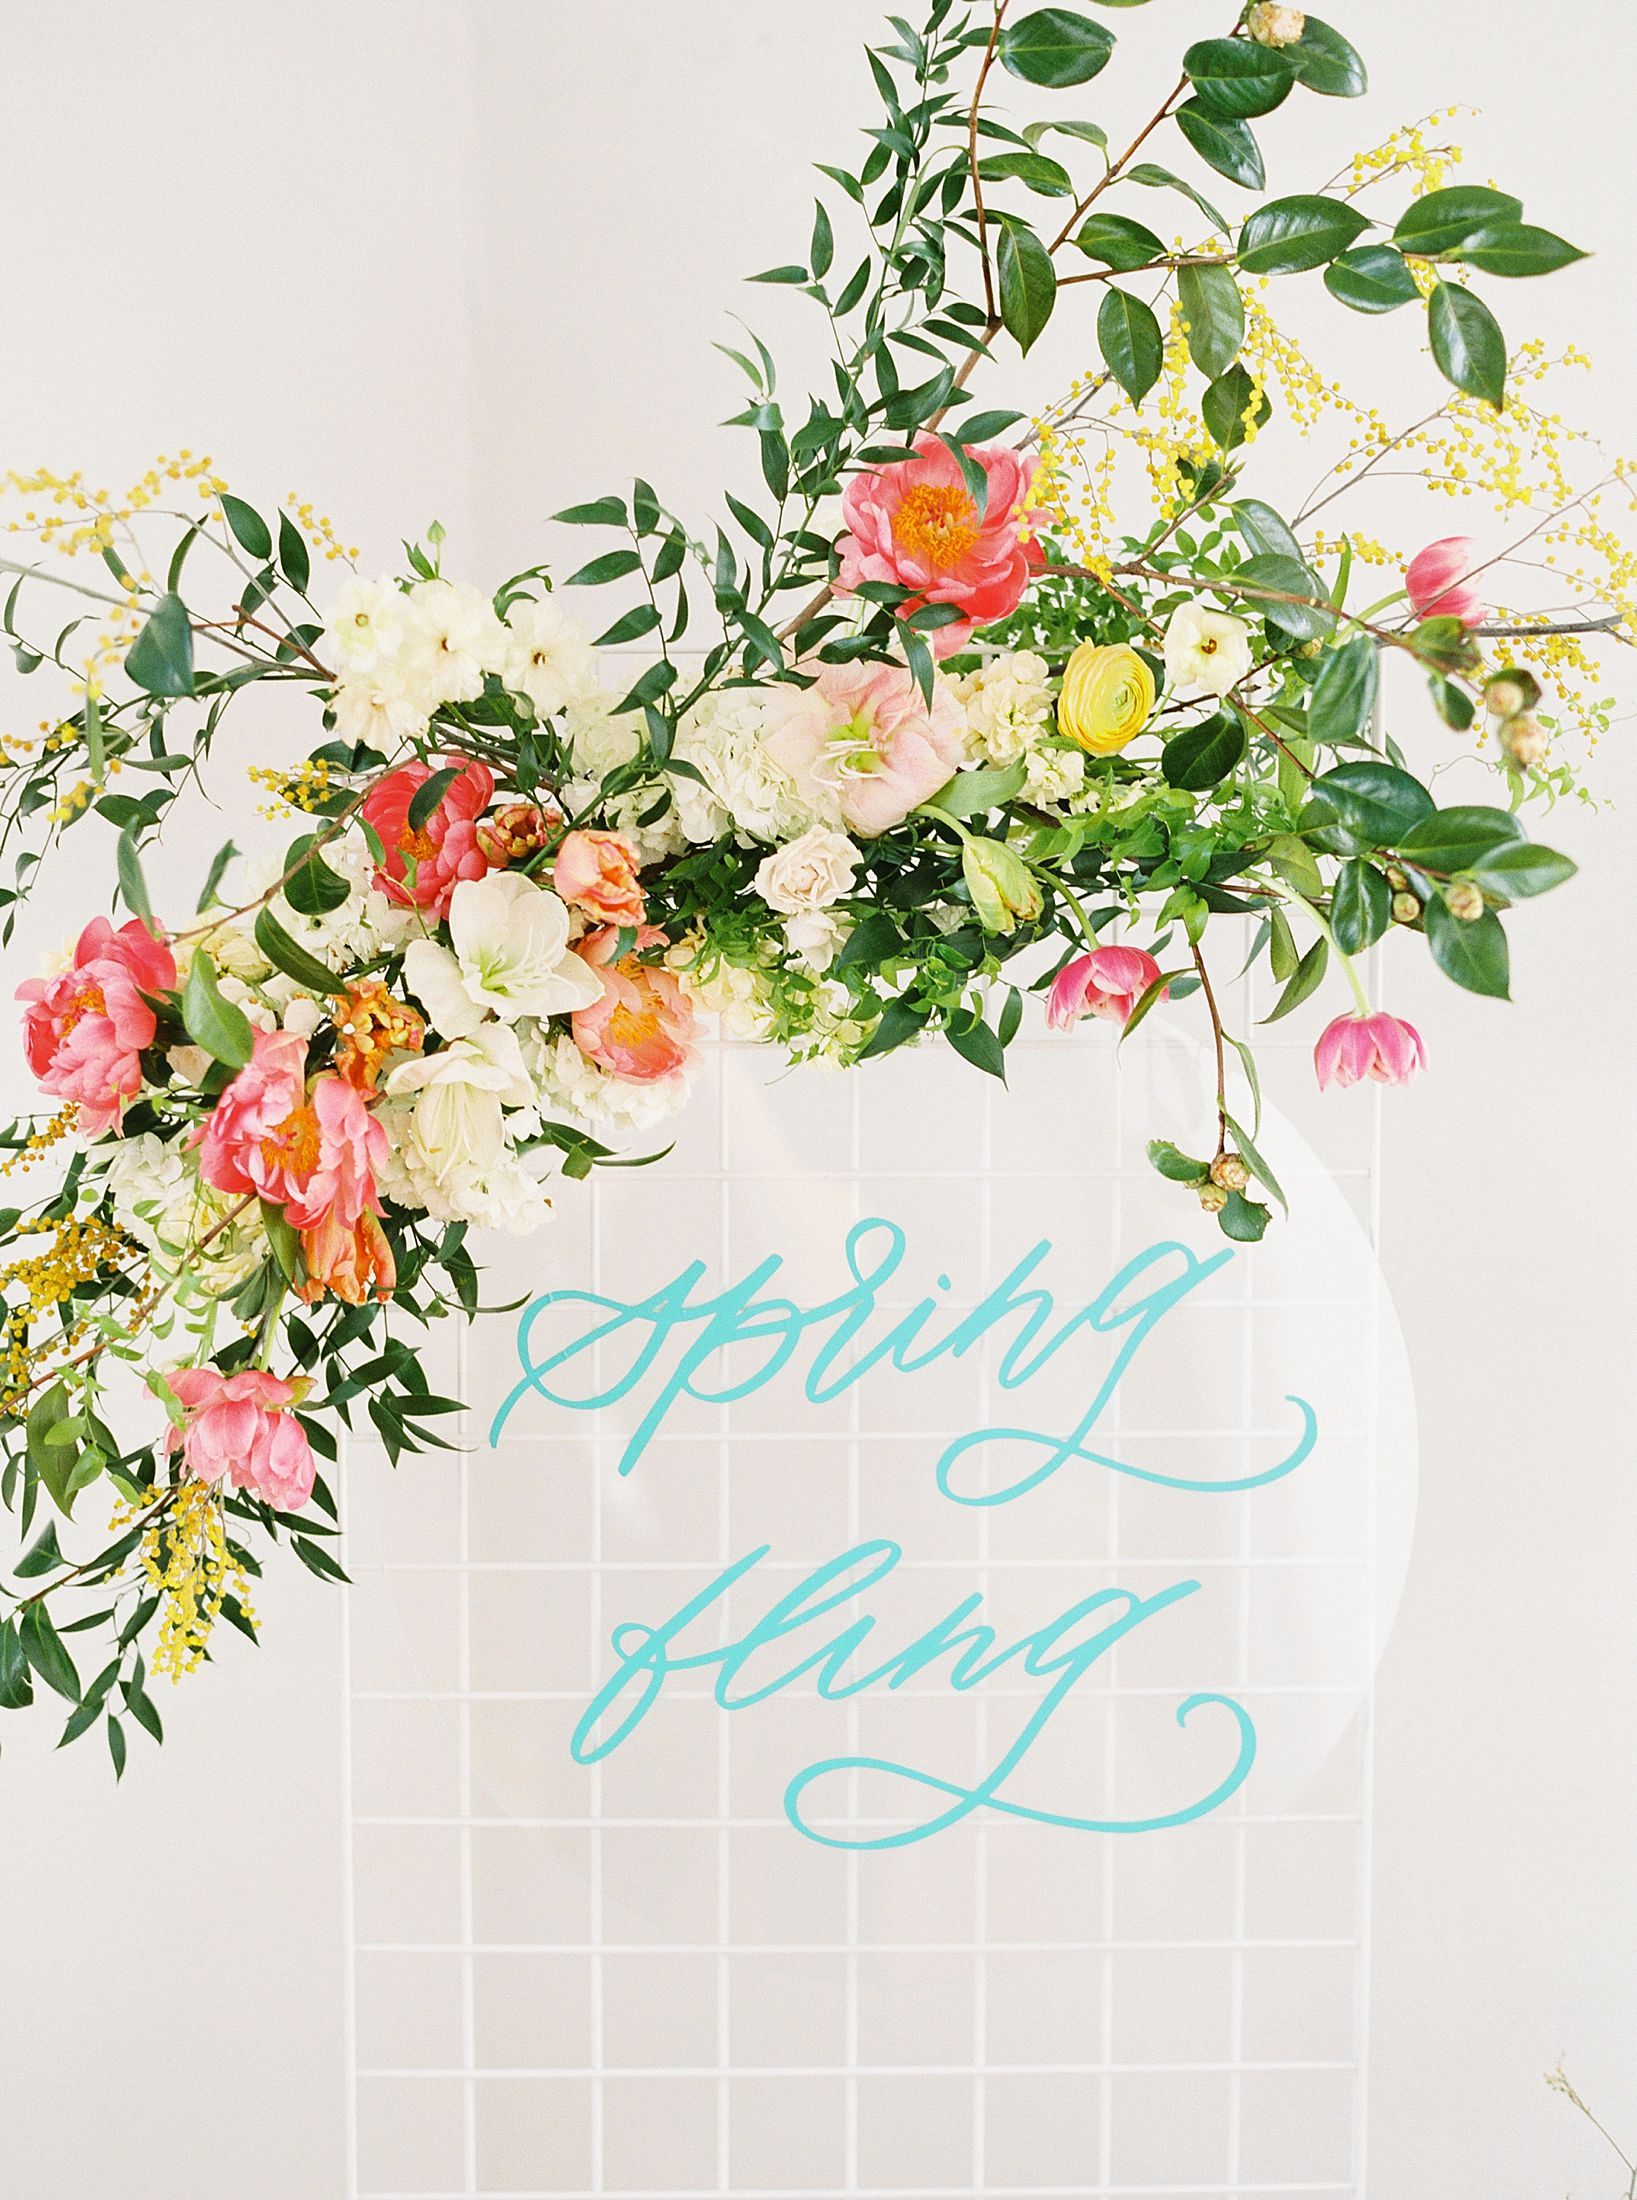 Bay Area Spring Wedding Inspiration - Ashley Baumgartner - Inspired By This - Party Crush Studio and Lens of Lenox Videography - Bay Area Wedding Photography_0050.jpg